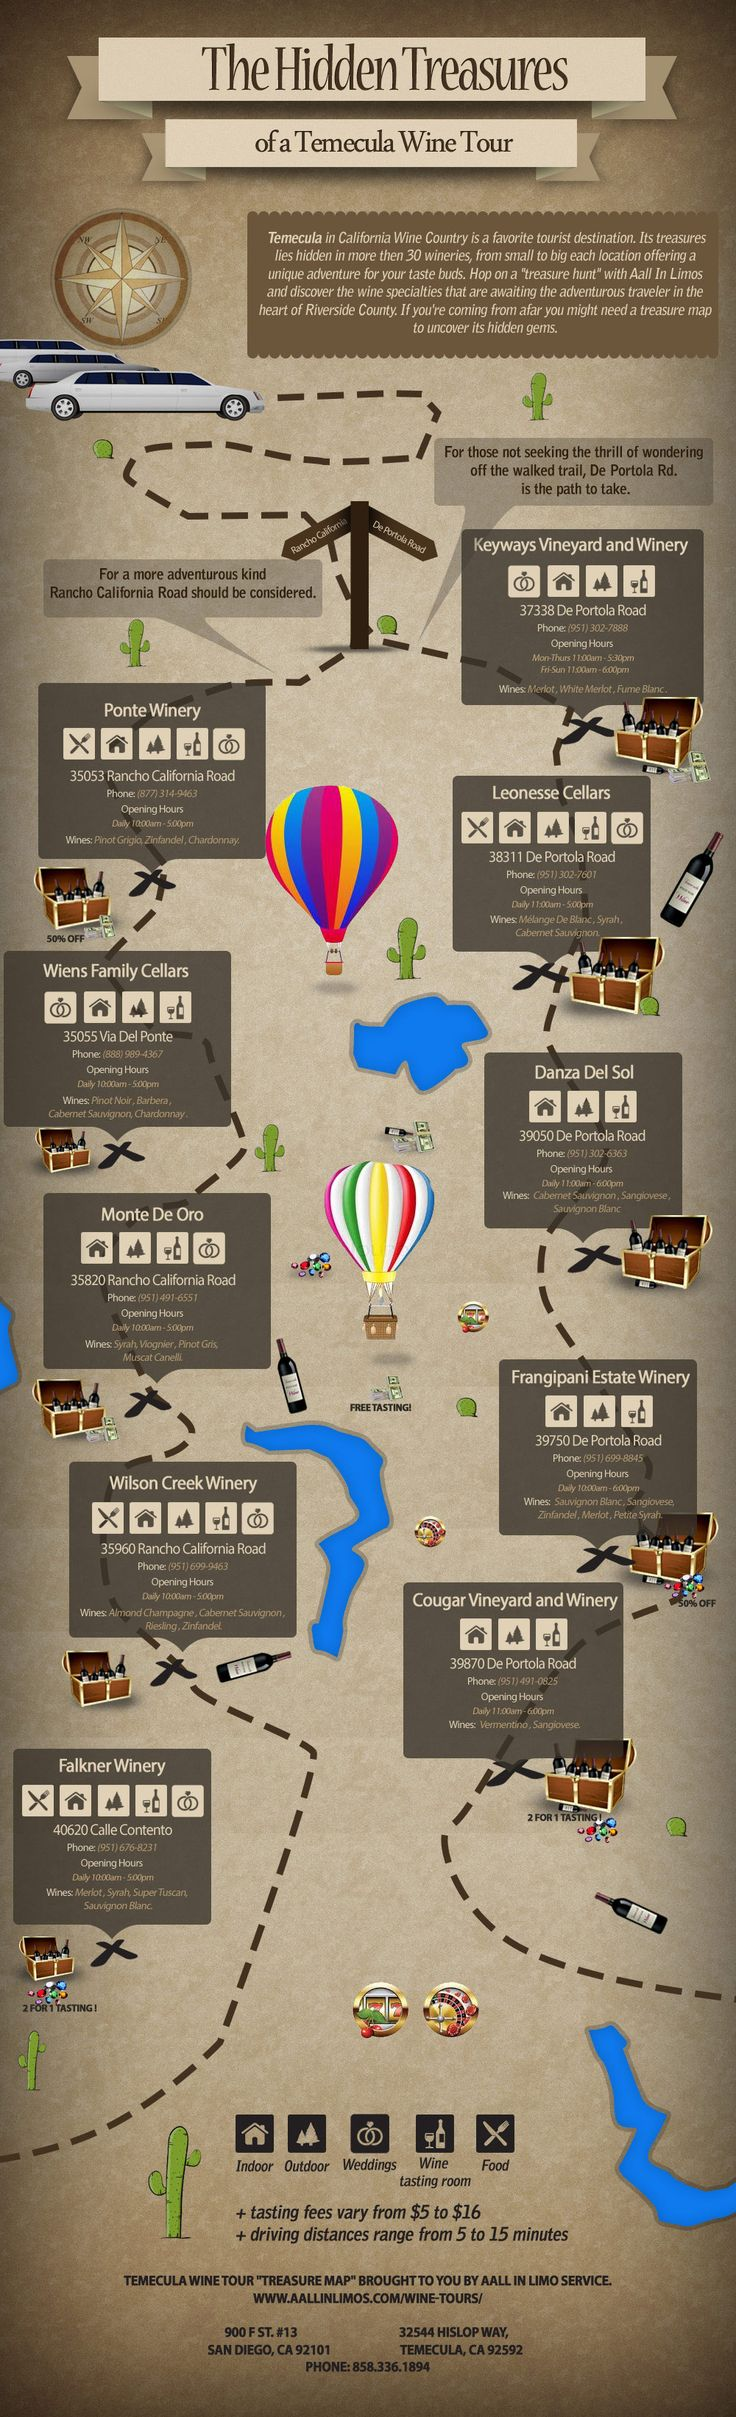 Map Of Temecula Wineries. There are more then are on this map, but this map is a good place to start for anyone visiting Temecula Wine Country for the first time, and features some hidden treasures that are often overlooked.